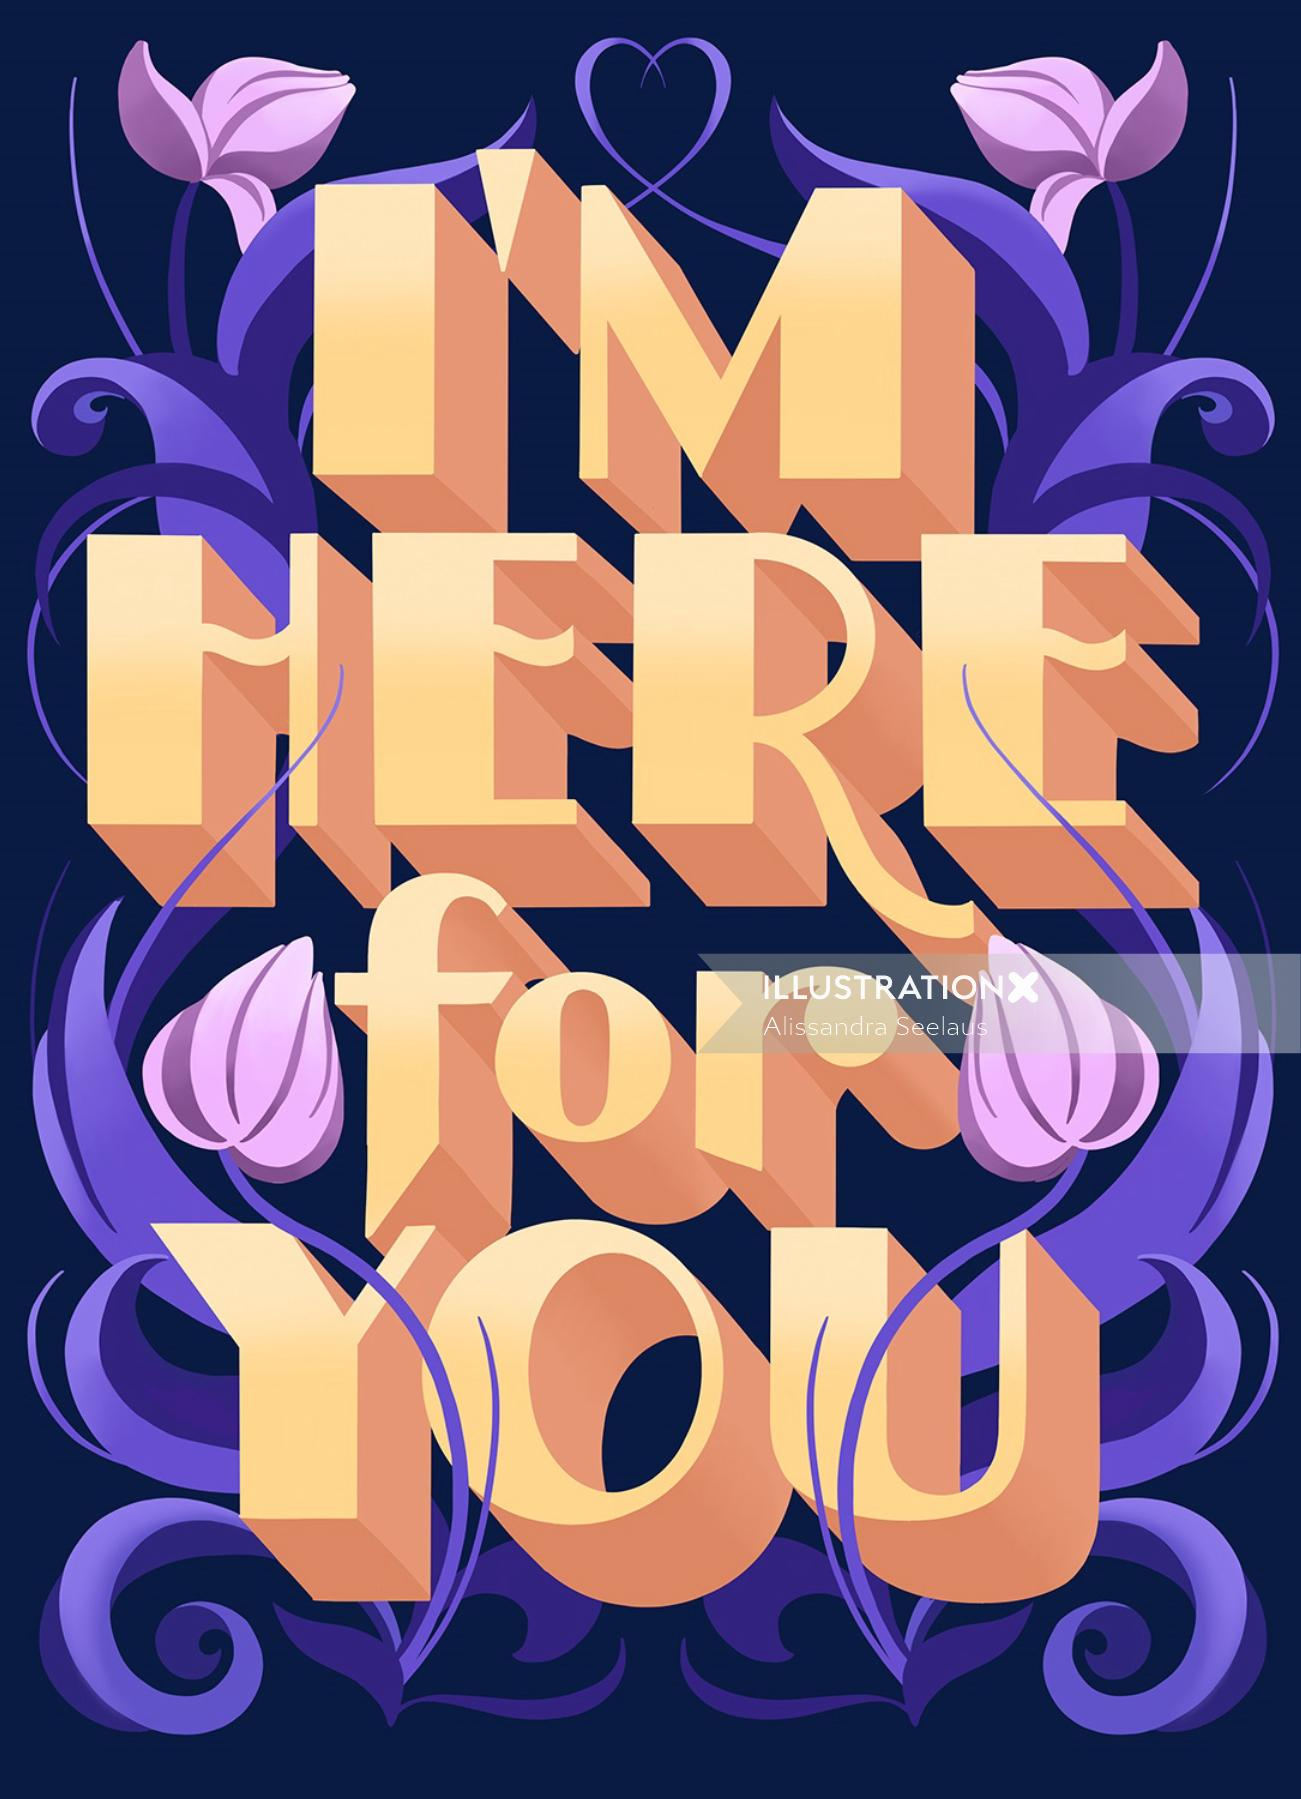 Lettering art of i'm here for you